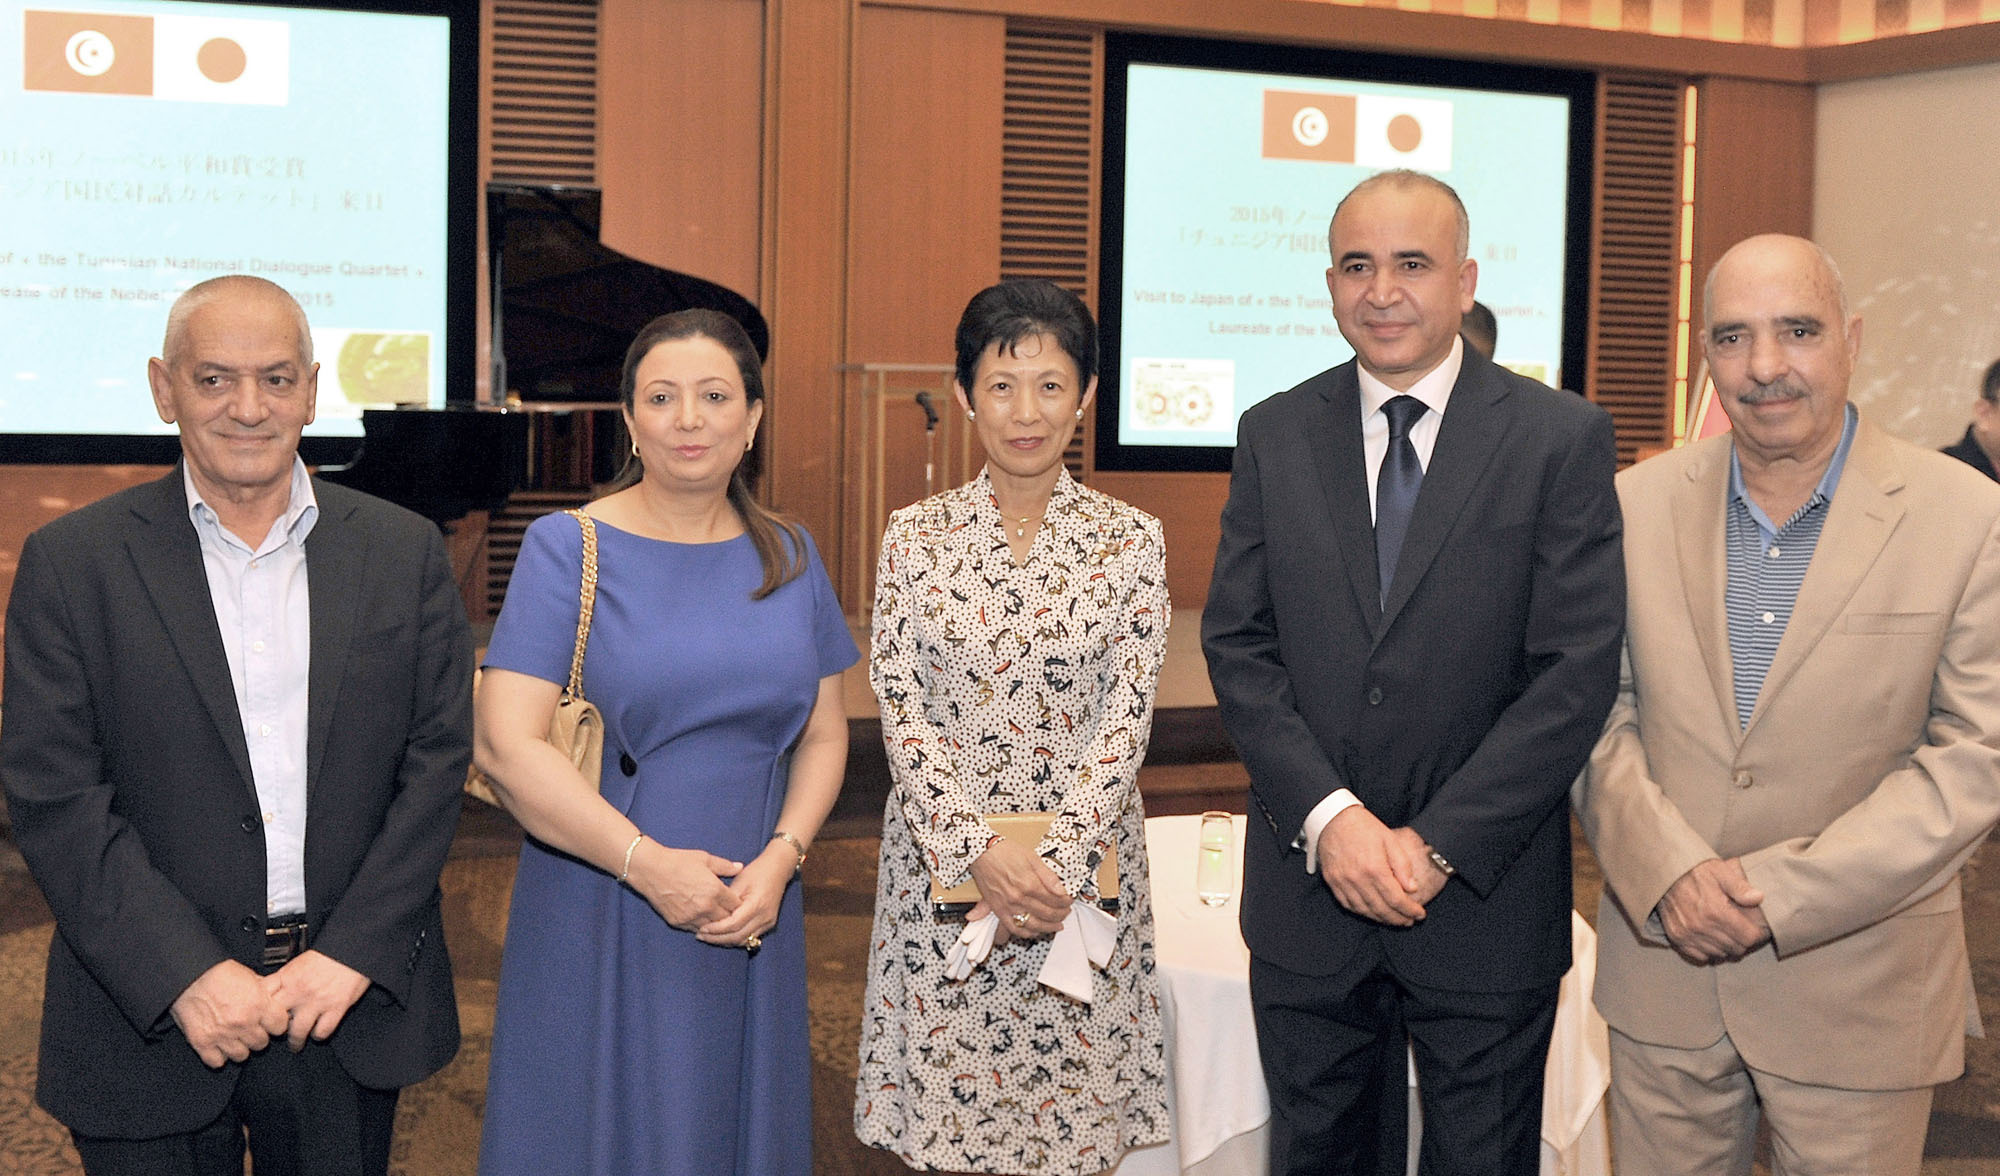 Princess Takamado (center) poses with members of the Tunisian National Dialogue Quartet, the winners of the 2015 Nobel Peace Prize, (from left) Tunisian General Labor Union Secretary-General, Hassine Abassi; Tunisian Confederation of Industry, Trade and Handicrafts President Wided Bouchamaoui; Ambassador of Tunisia in Japan Kais Darragi; and Tunisian Human Rights League President Abdessattar Ben Moussa at a reception in their honor at the Peninsula Hotel Tokyo on July 22. | YOSHIAKI MIURA